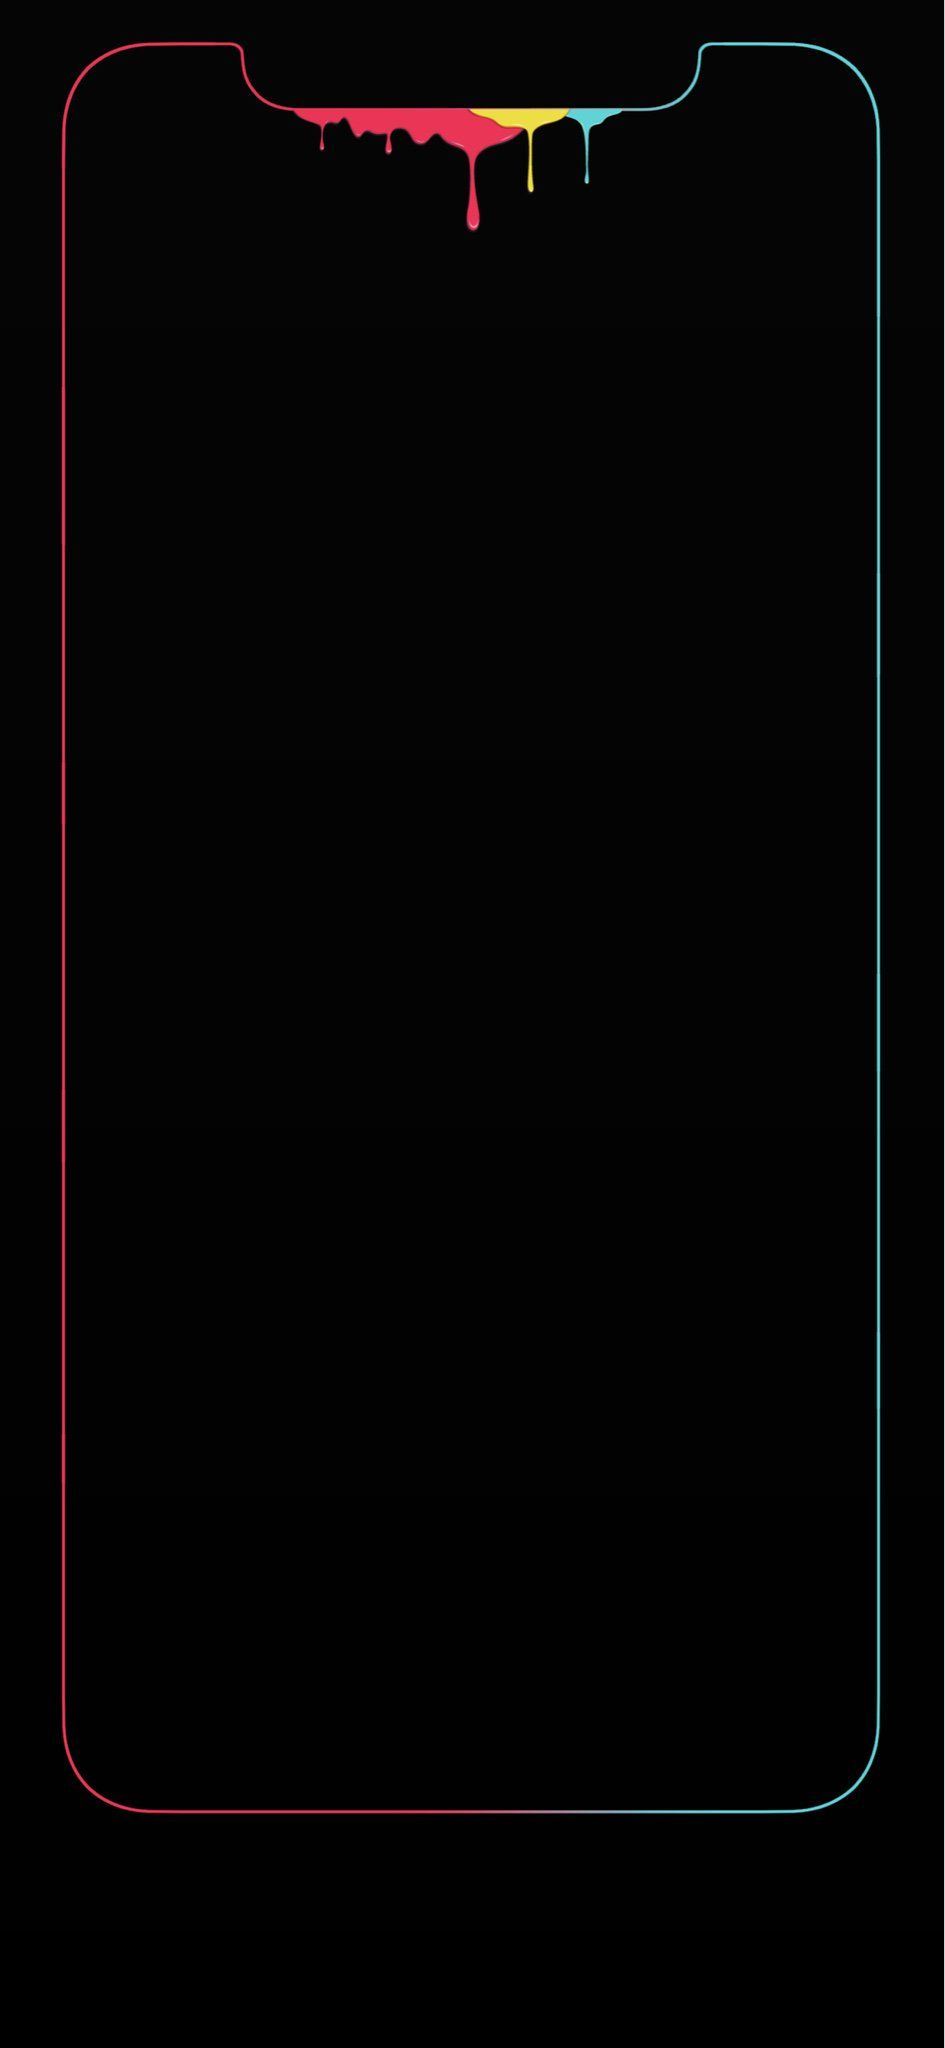 All Black Wallpaper For Iphone X